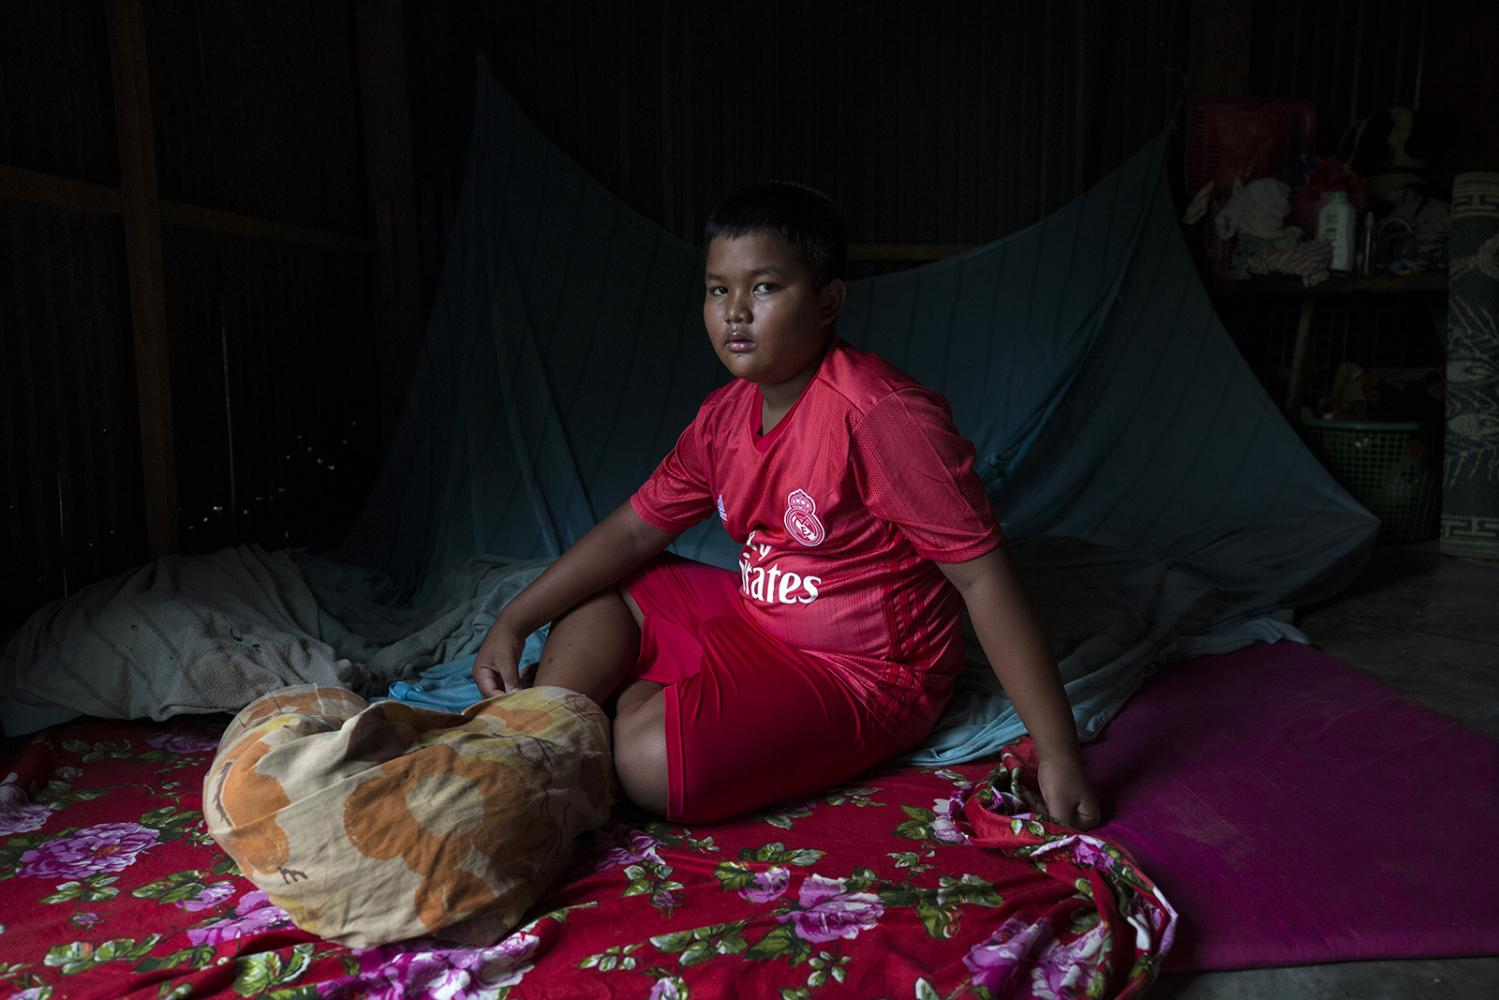 Chan Pheakdey, 10, sits in the doorway of his house after he was released from the Angkor Hospital for Children earlier that day. During the rainy season a constant presence of water makes perfect conditions for mosquitos with his sister, mother and neighbours all getting sick from dengue fever this year. Siem Reap, Cambodia - October 2019